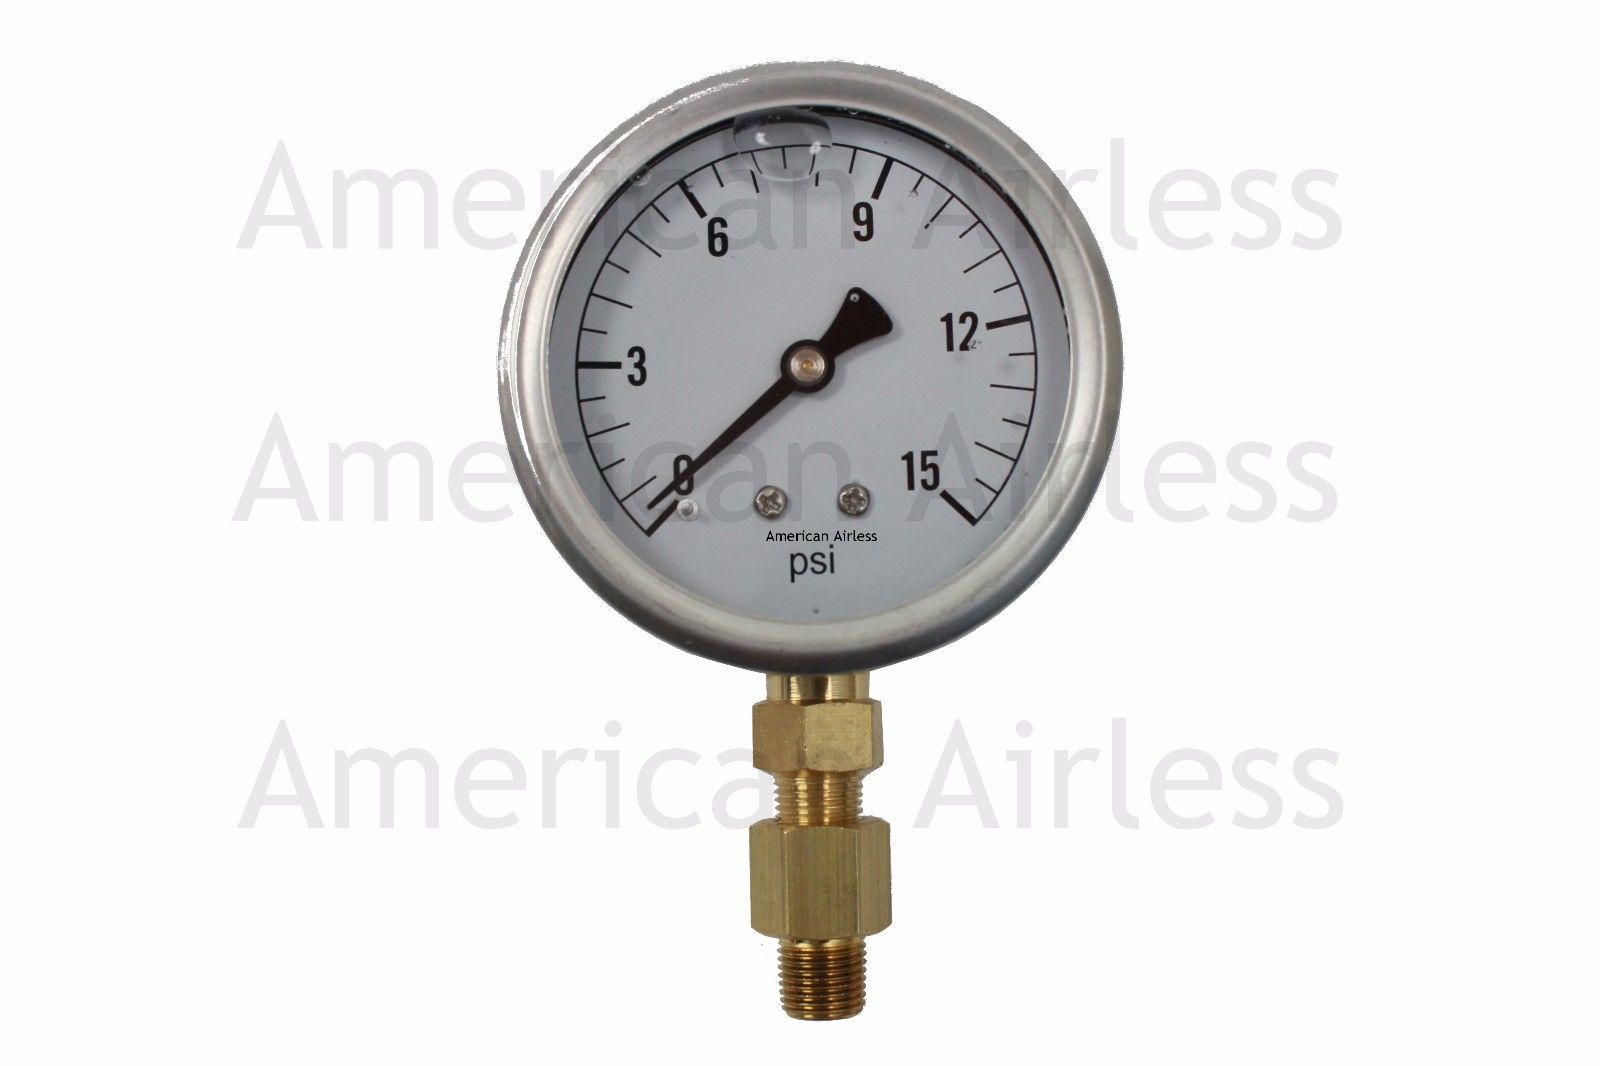 Ha1180 heater pressure gauge 0 15 psi 2 face glycerin for Alpine cuisine bs 400 propane burner